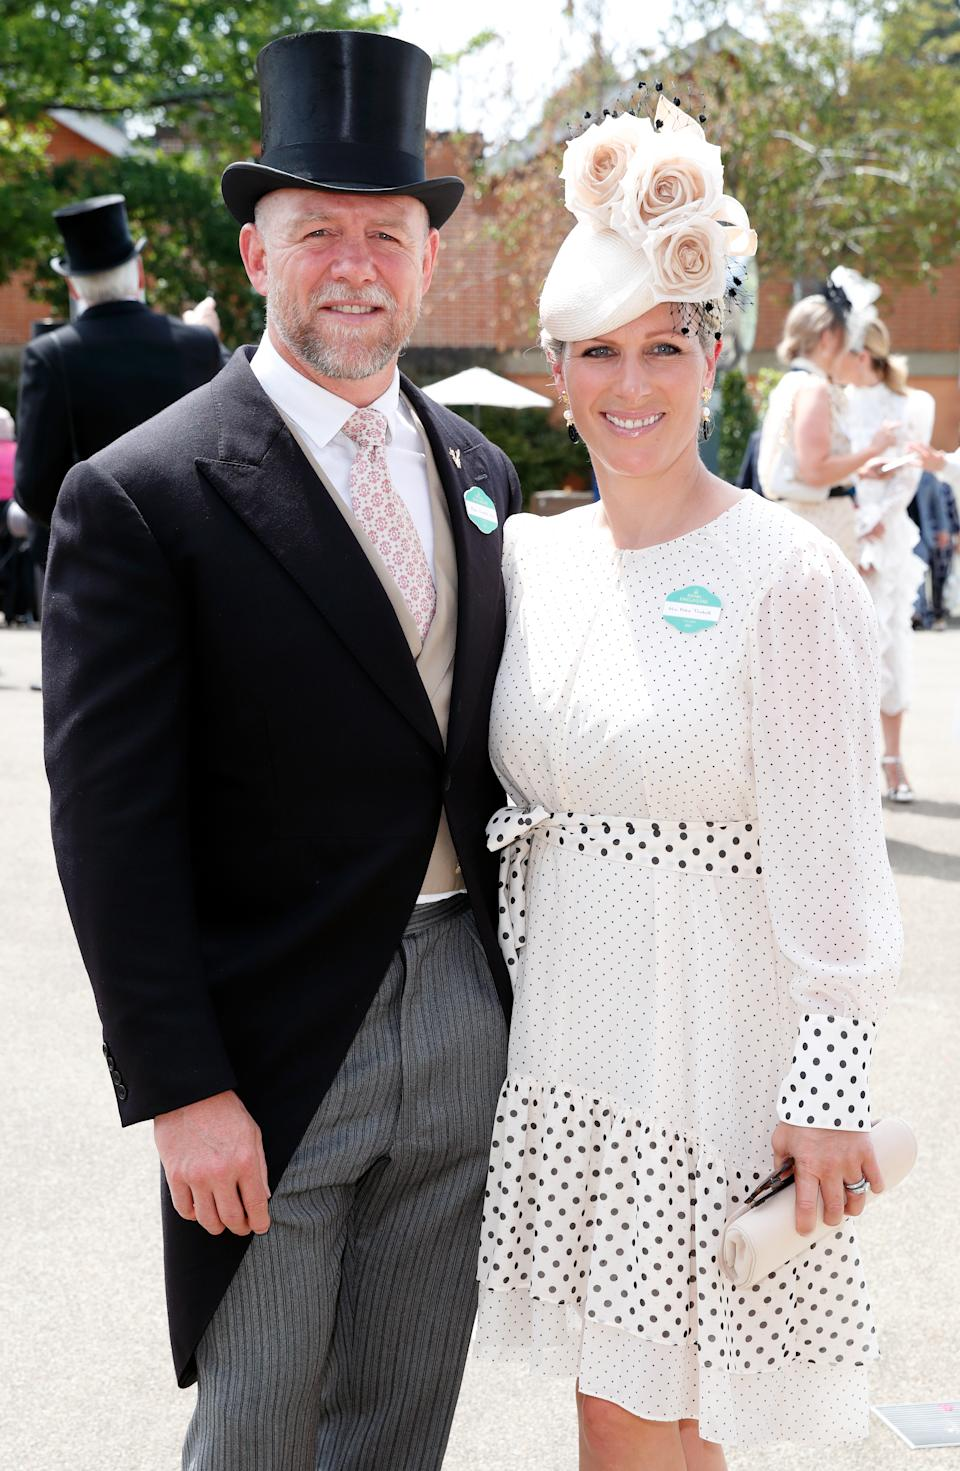 ASCOT, UNITED KINGDOM - JUNE 15: (EMBARGOED FOR PUBLICATION IN UK NEWSPAPERS UNTIL 24 HOURS AFTER CREATE DATE AND TIME) Mike Tindall and Zara Tindall attend day 1 of Royal Ascot at Ascot Racecourse on June 15, 2021 in Ascot, England. (Photo by Max Mumby/Indigo/Getty Images)